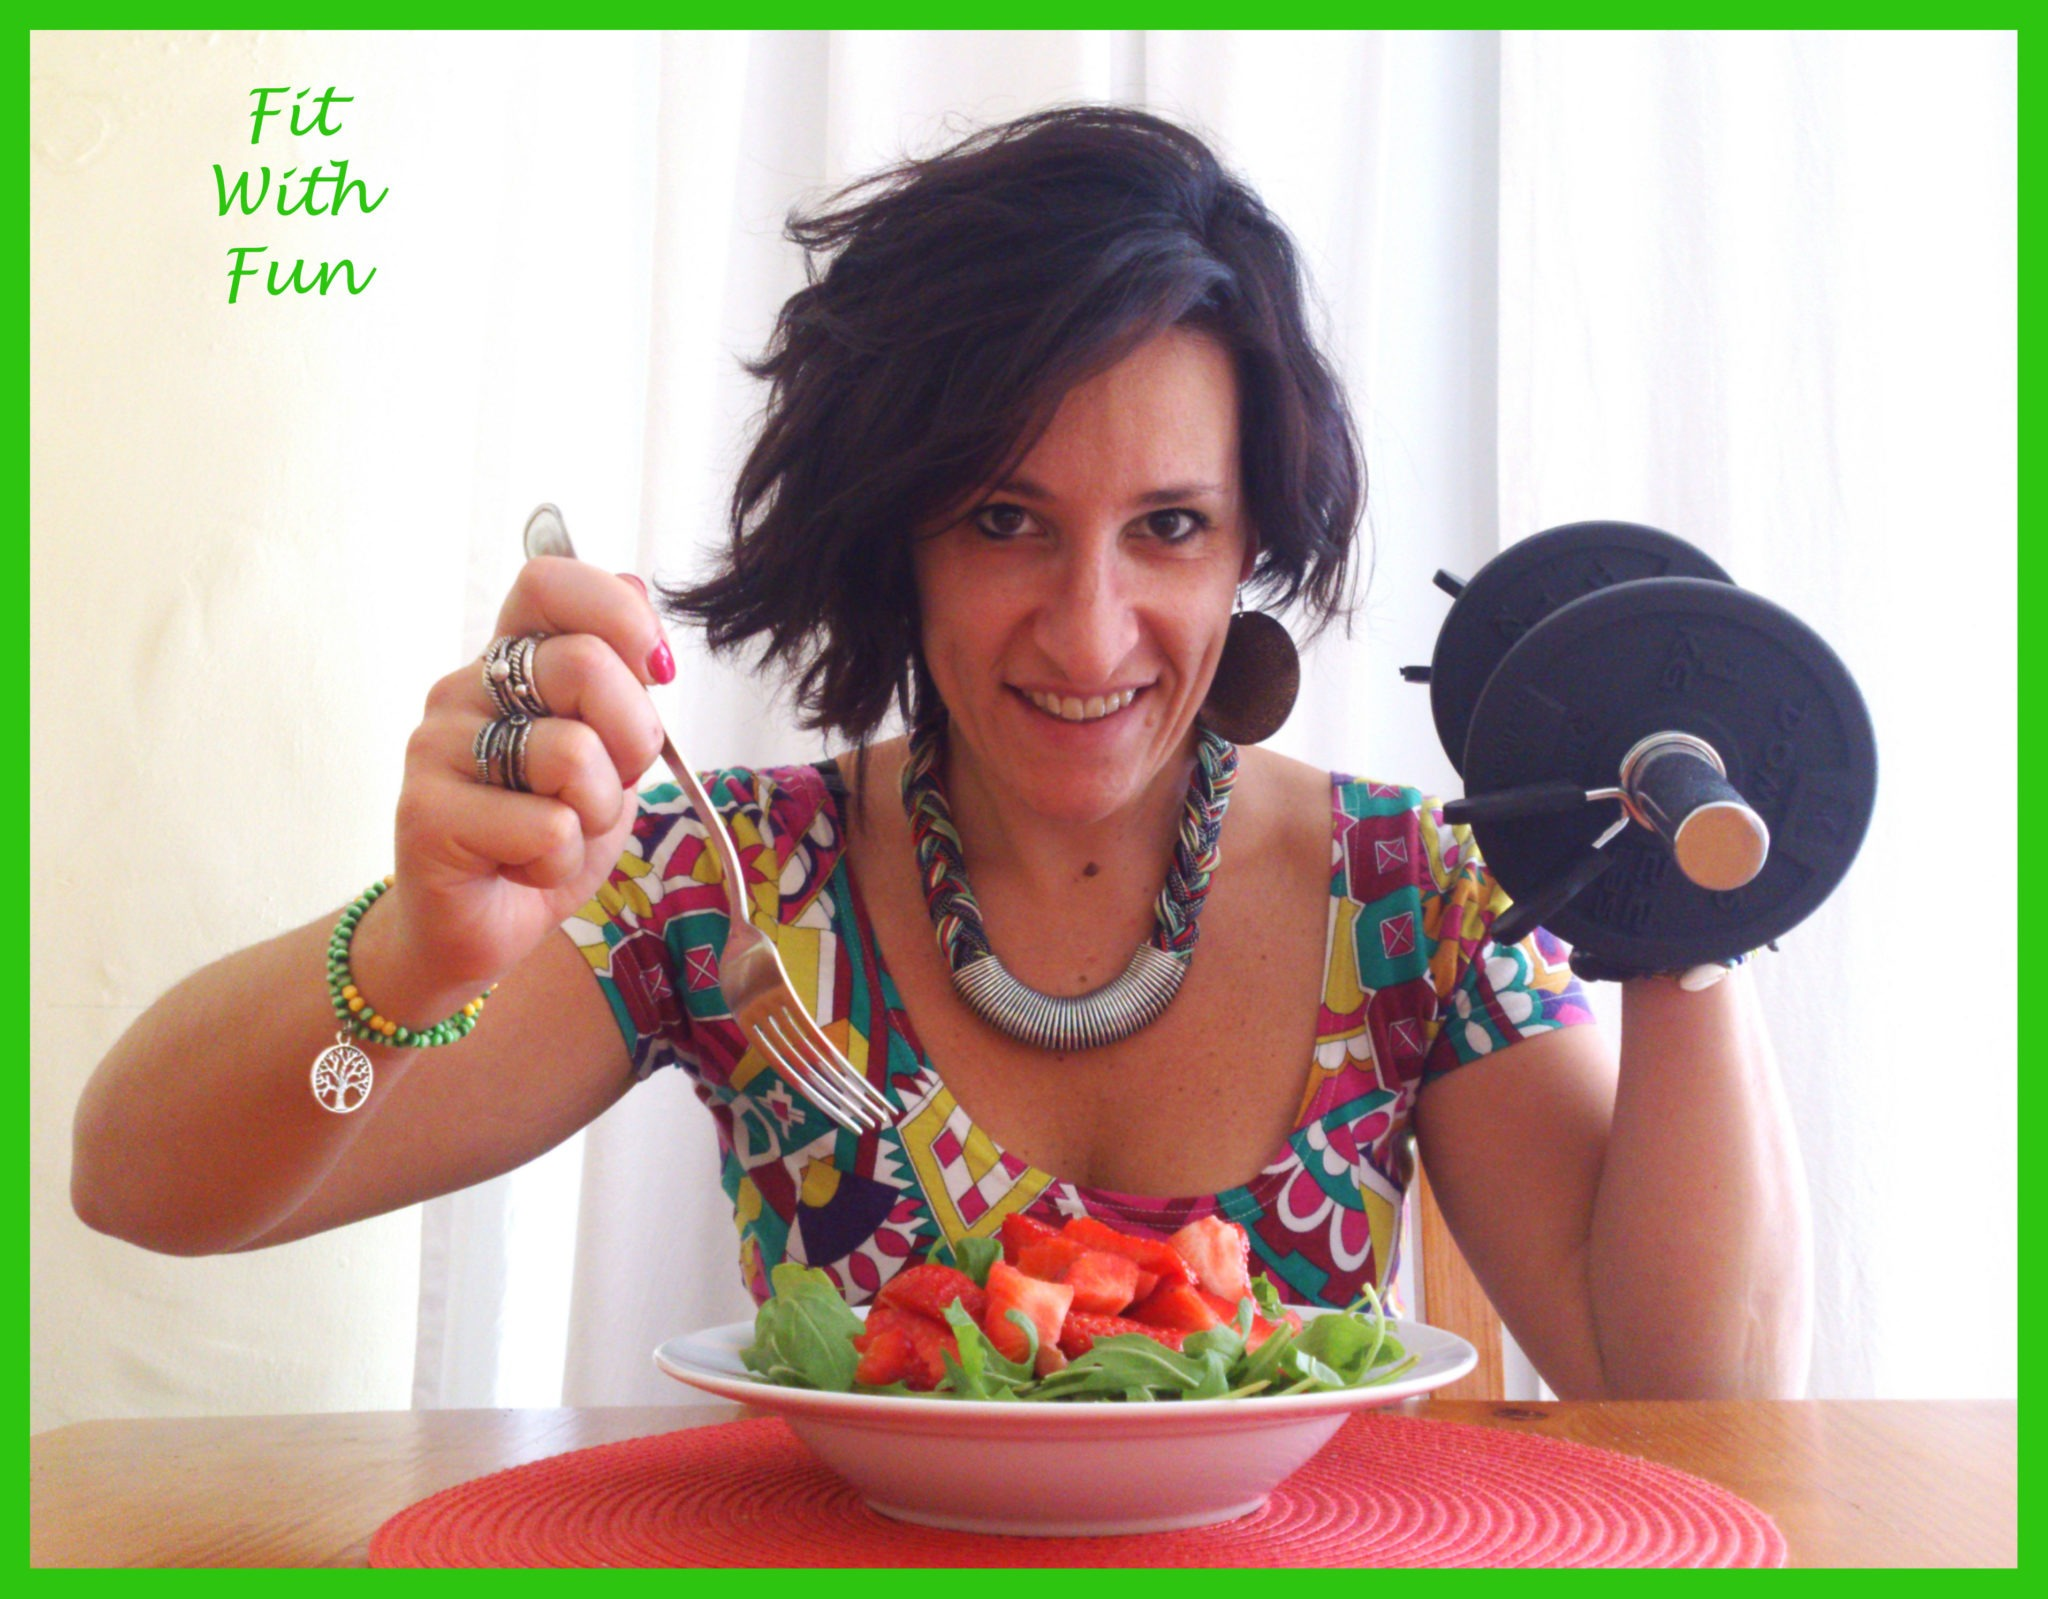 Nicoletta Truglia Food Blogger Fit with Fun